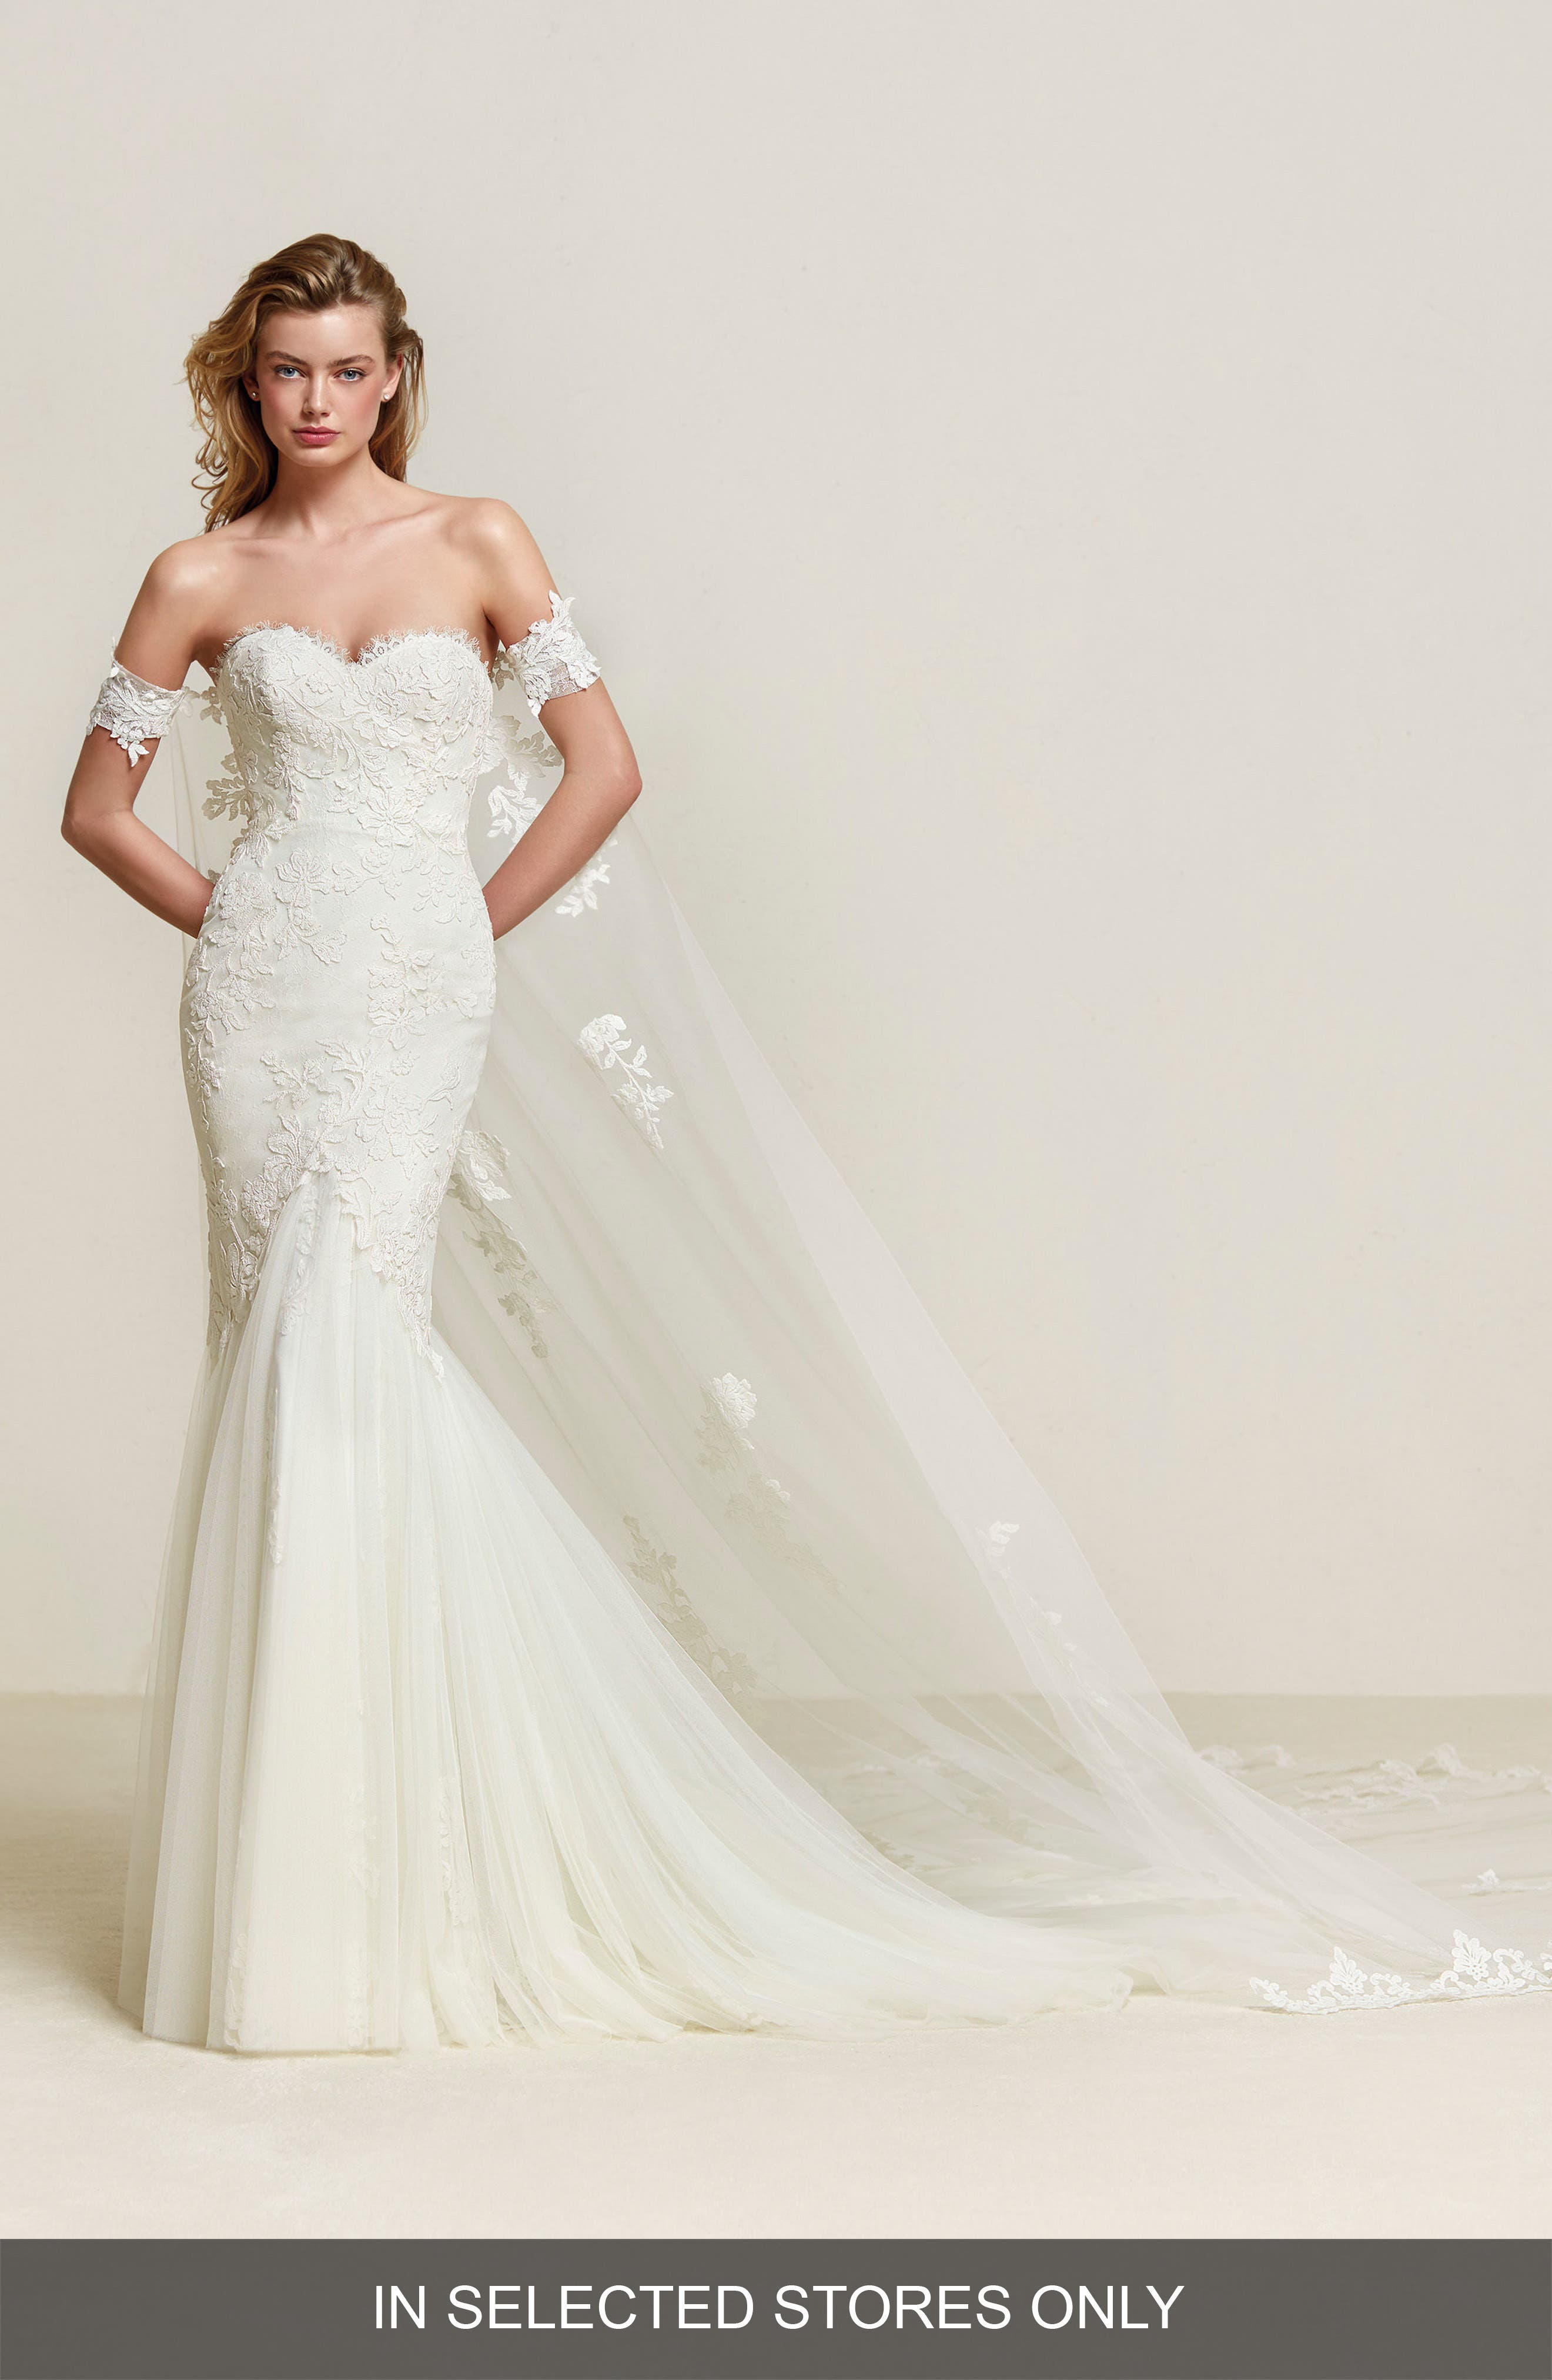 Main Image - Pronovias Drimea Strapless Mermaid Gown with Tulle Cape